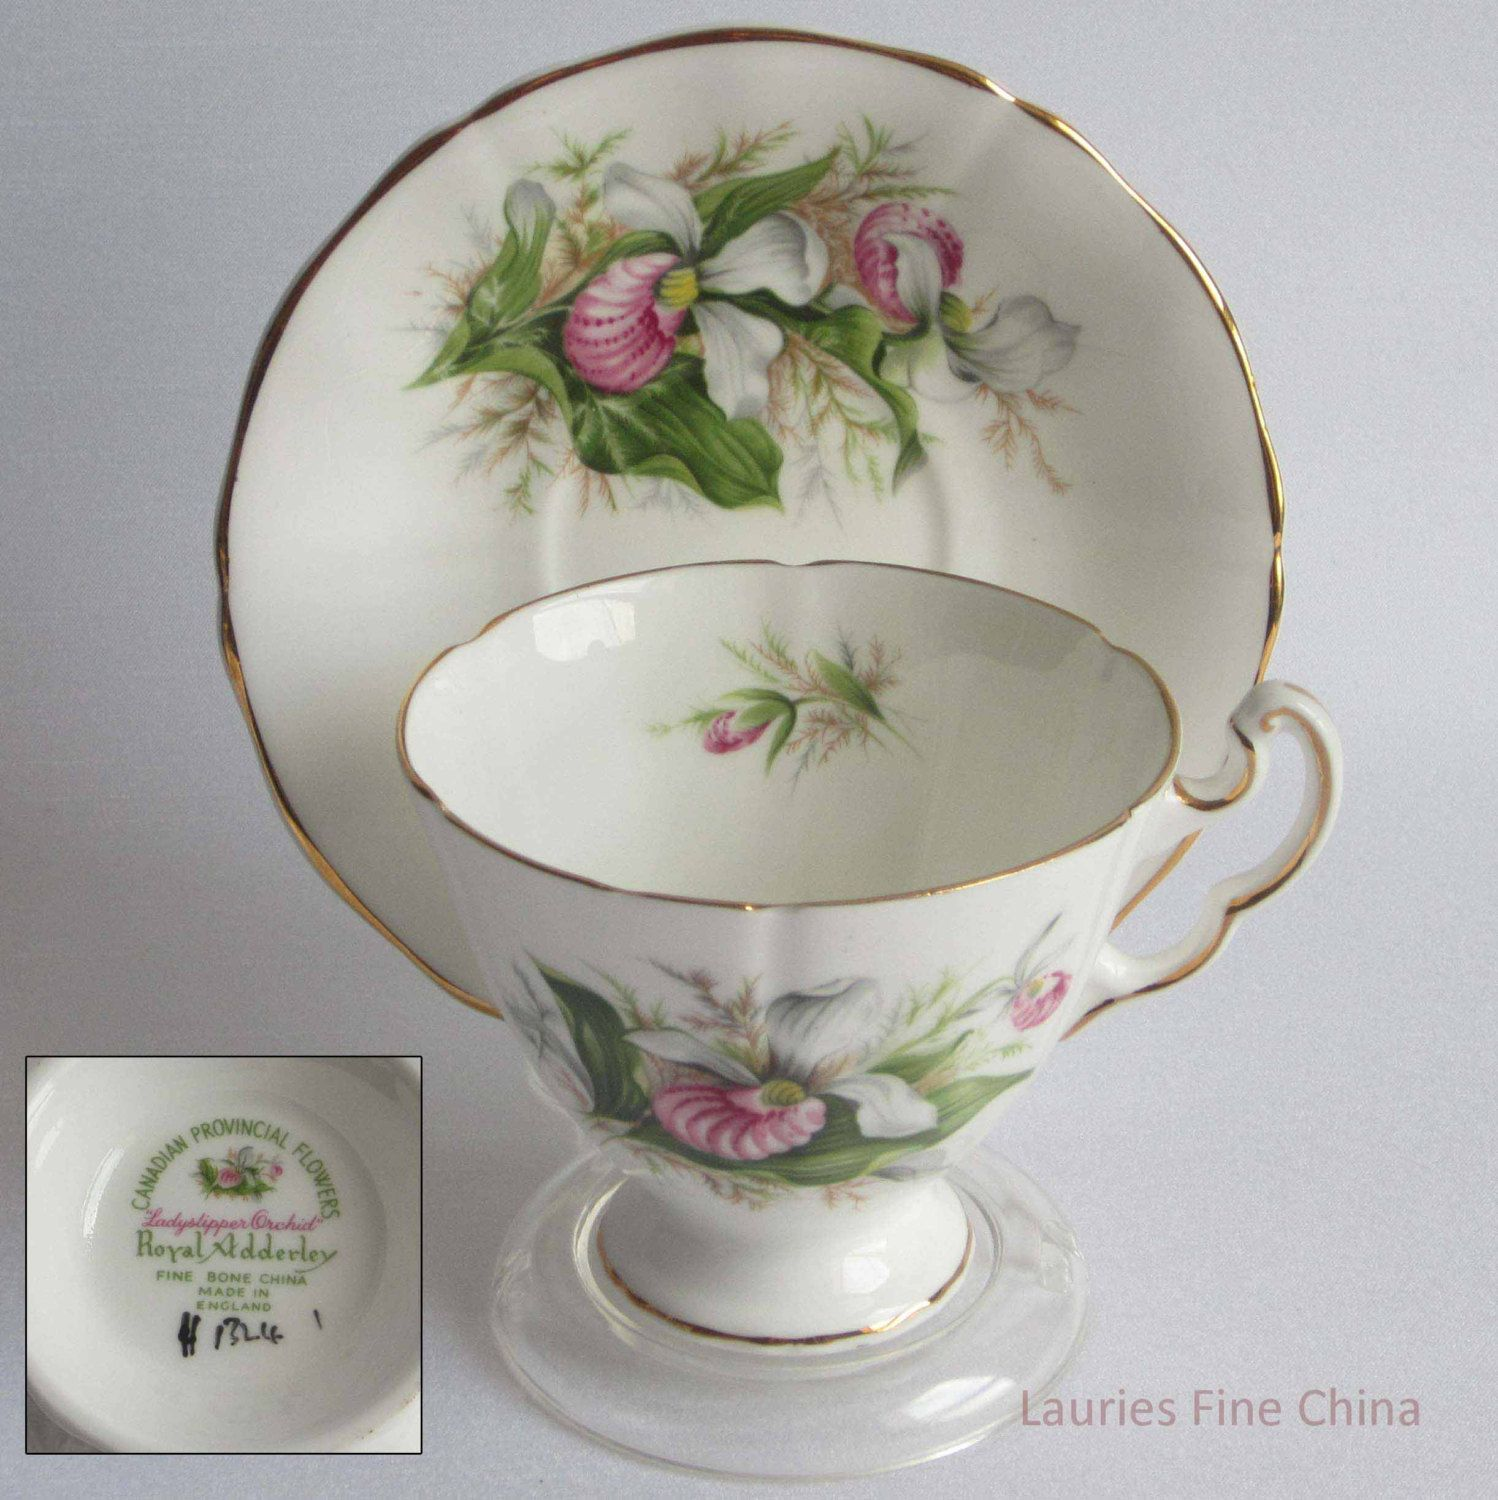 Royal Adderley/Adderley LADYSLIPPER ORCHID - Bone China Tea Cup and Saucer - Made in England by LauriesFineChina on Etsy